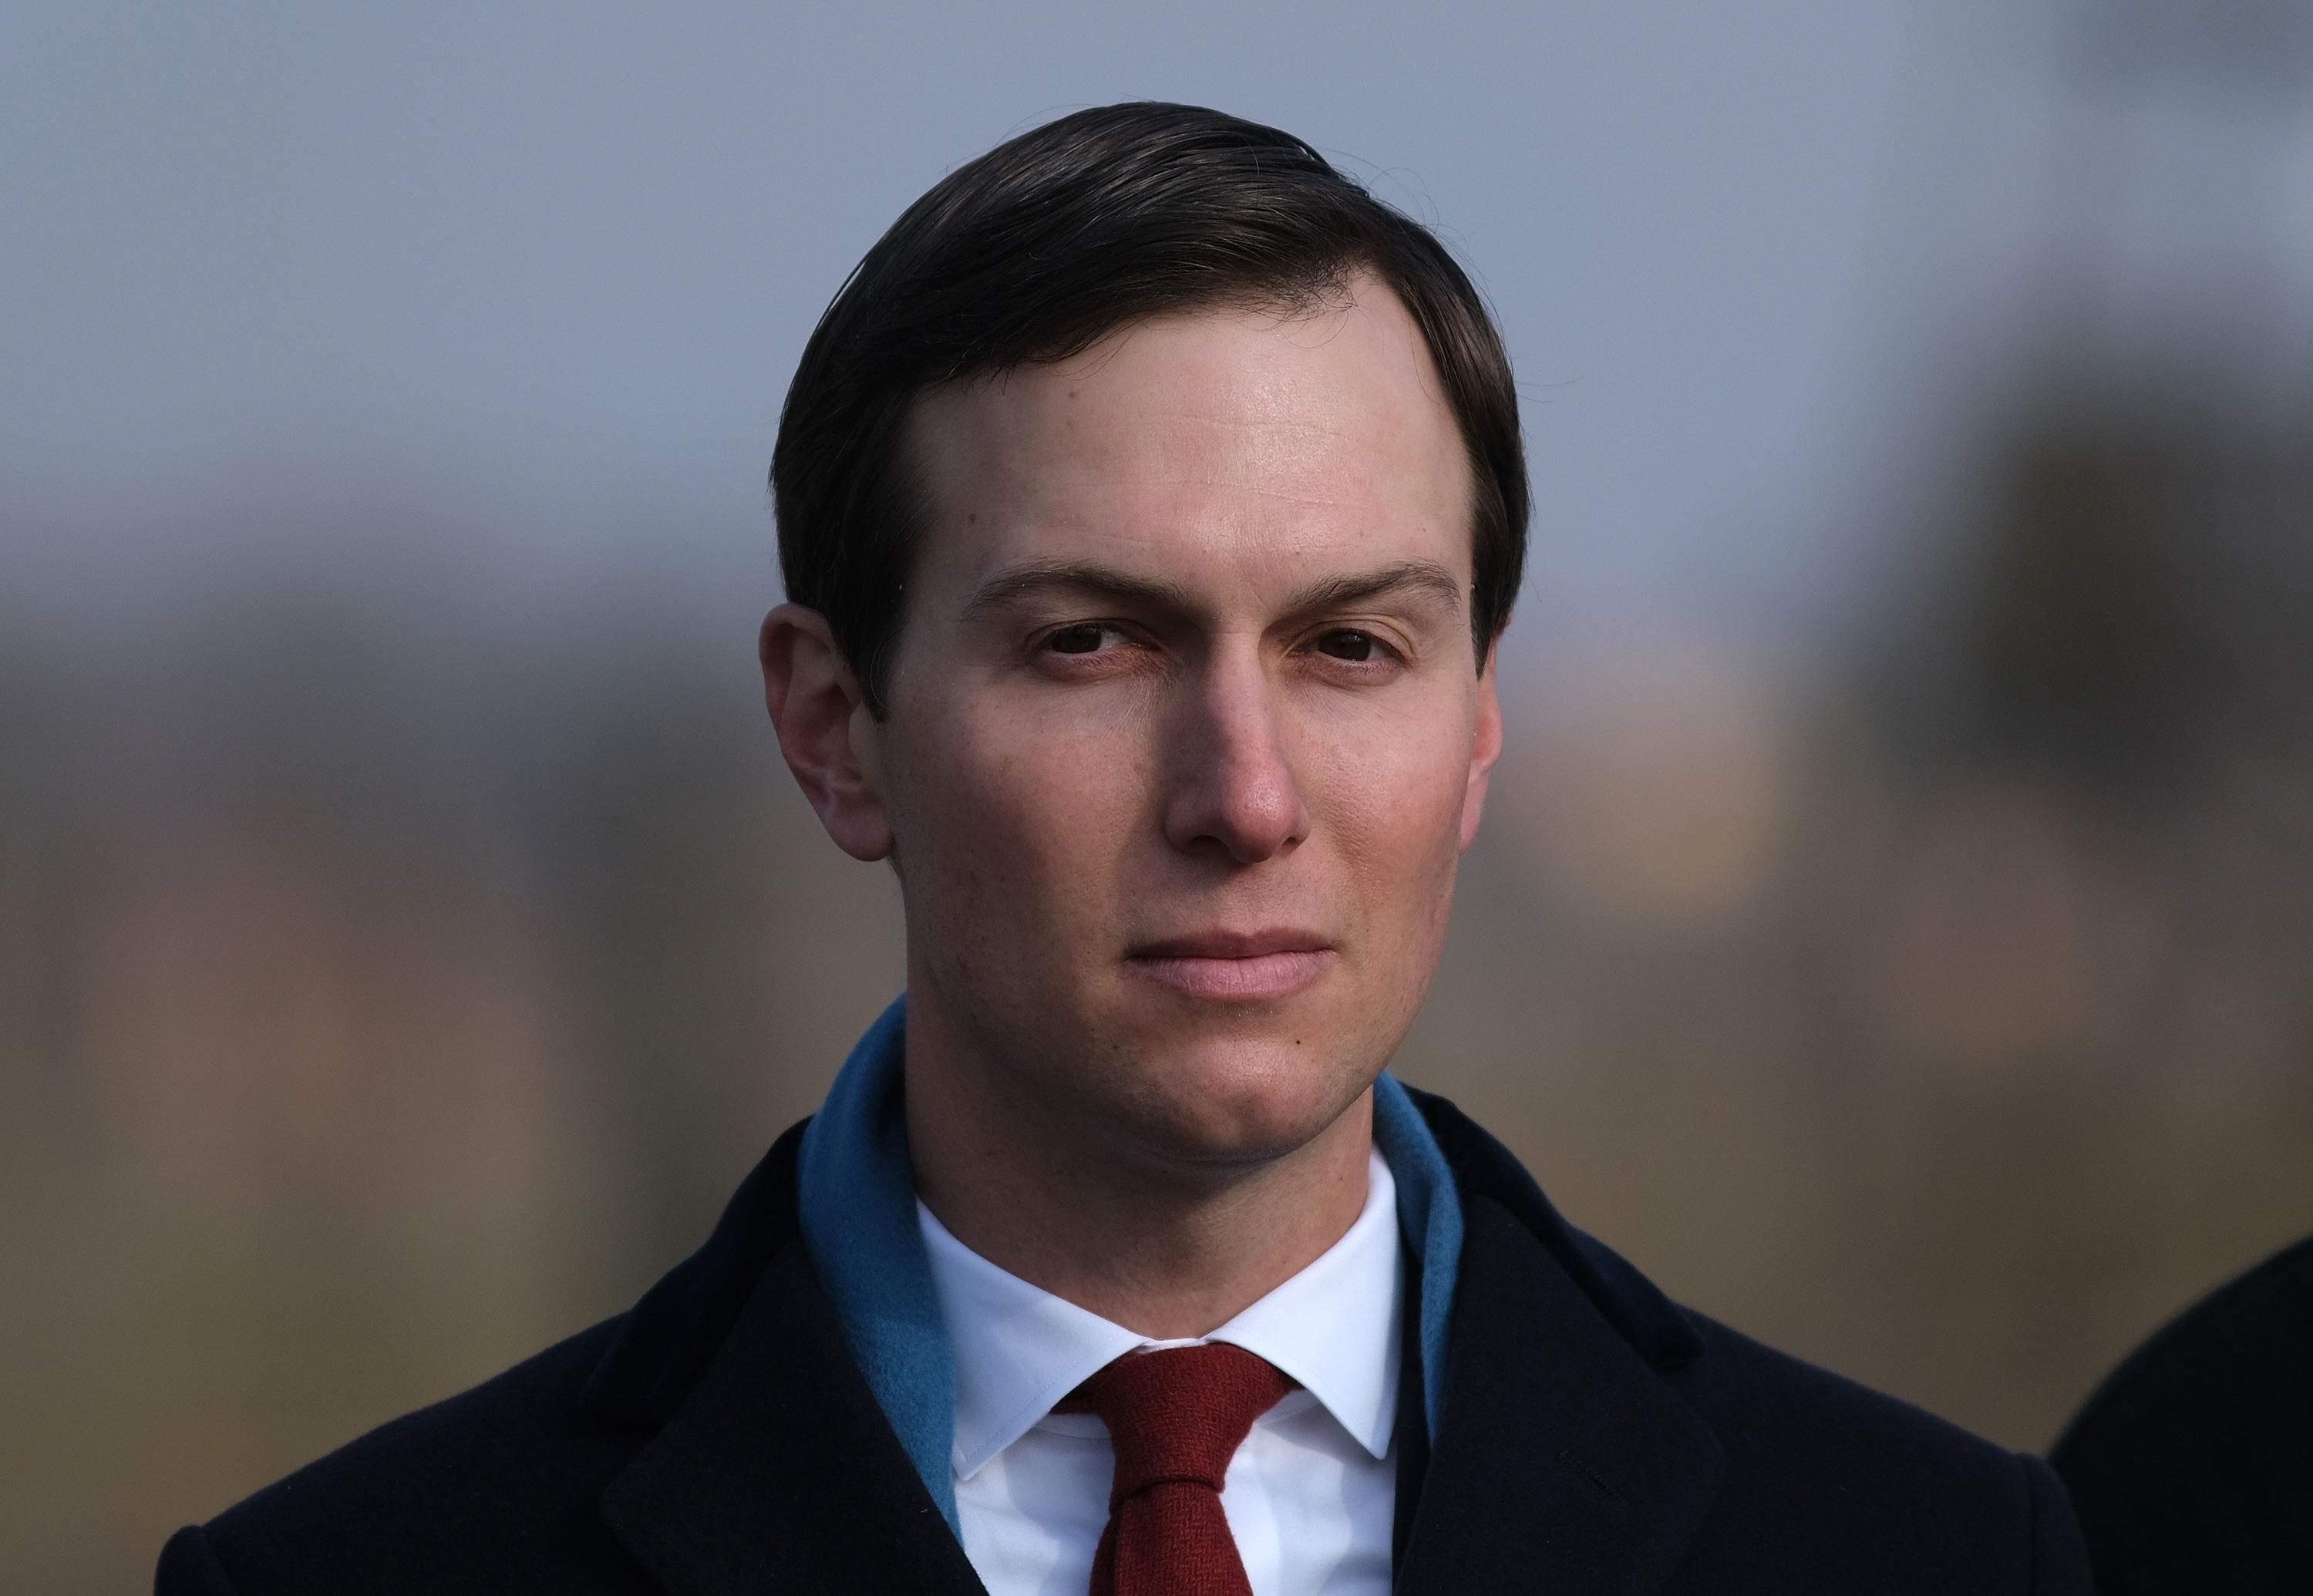 people are talking  again  about how jared kushner got into harvard